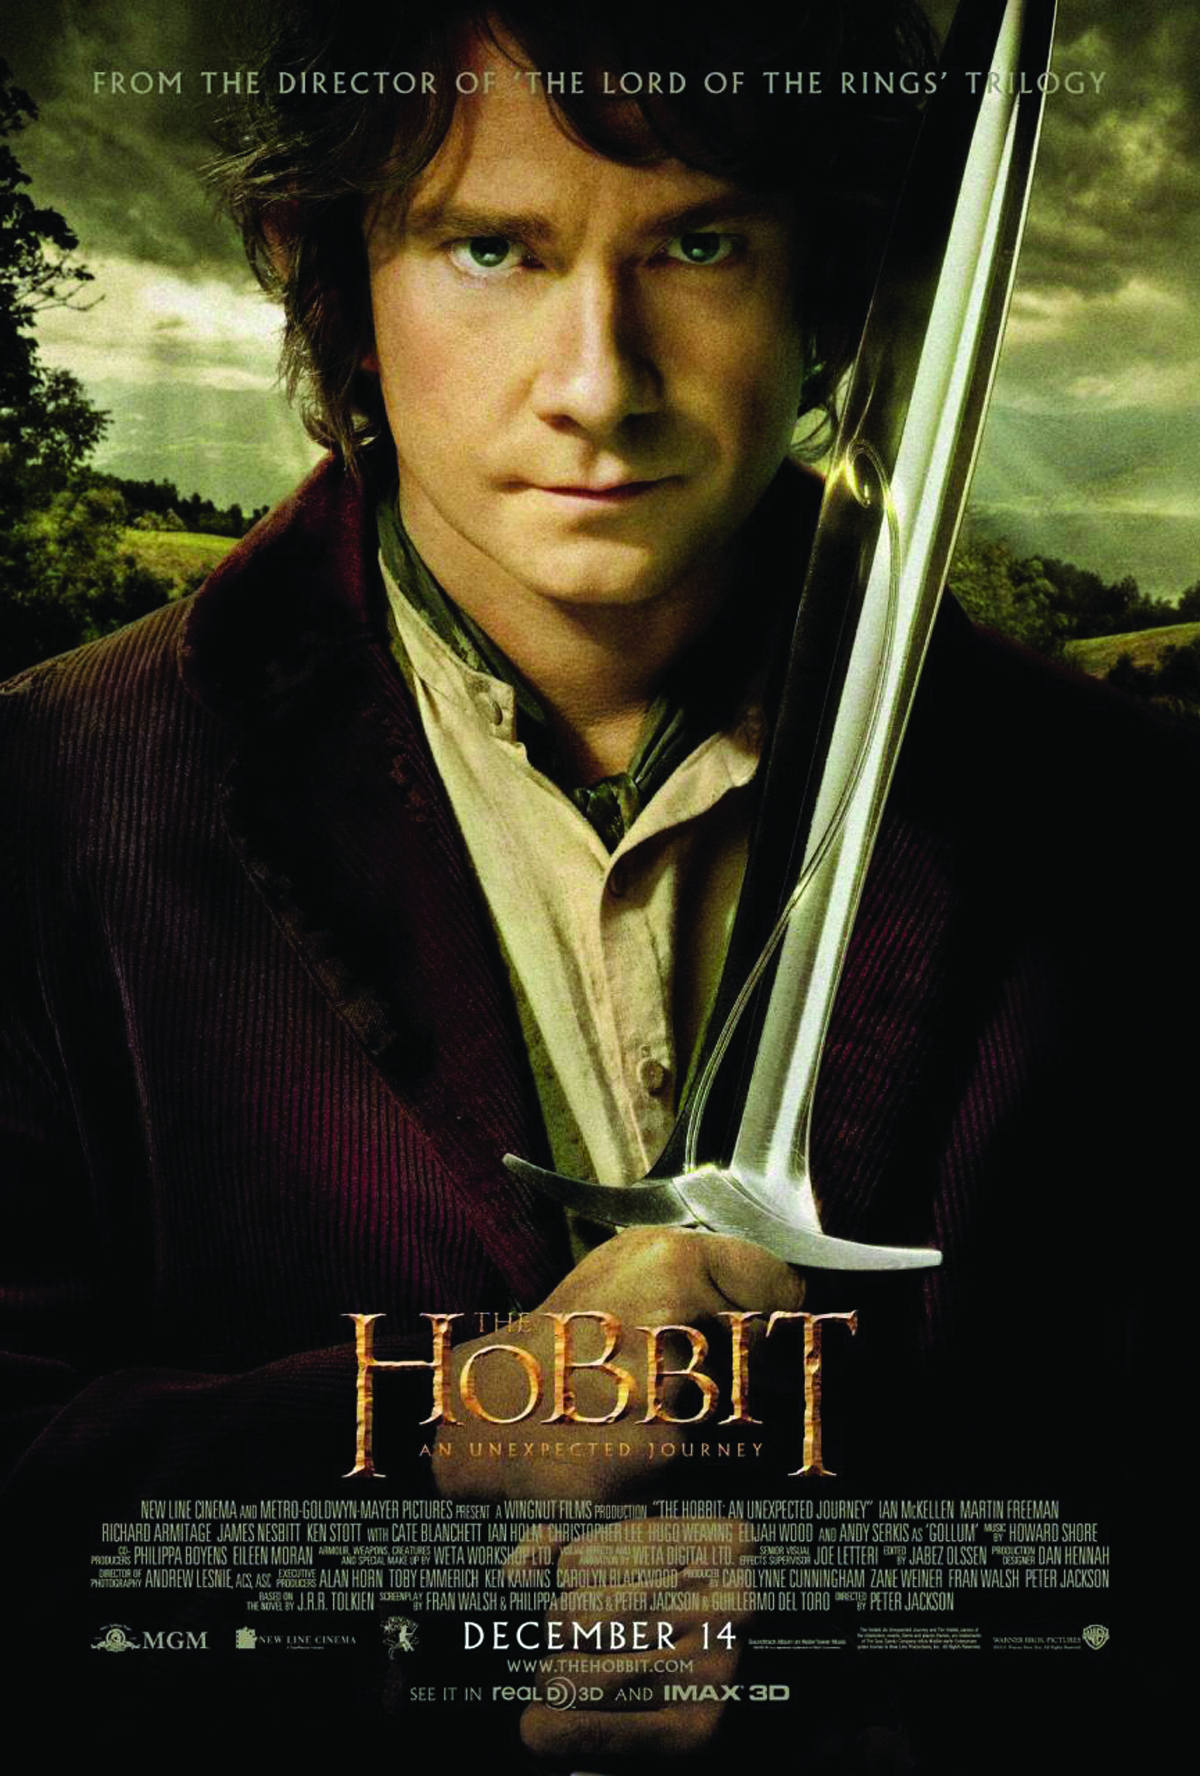 HOBBIT AN UNEXPECTED JOURNEY DVD